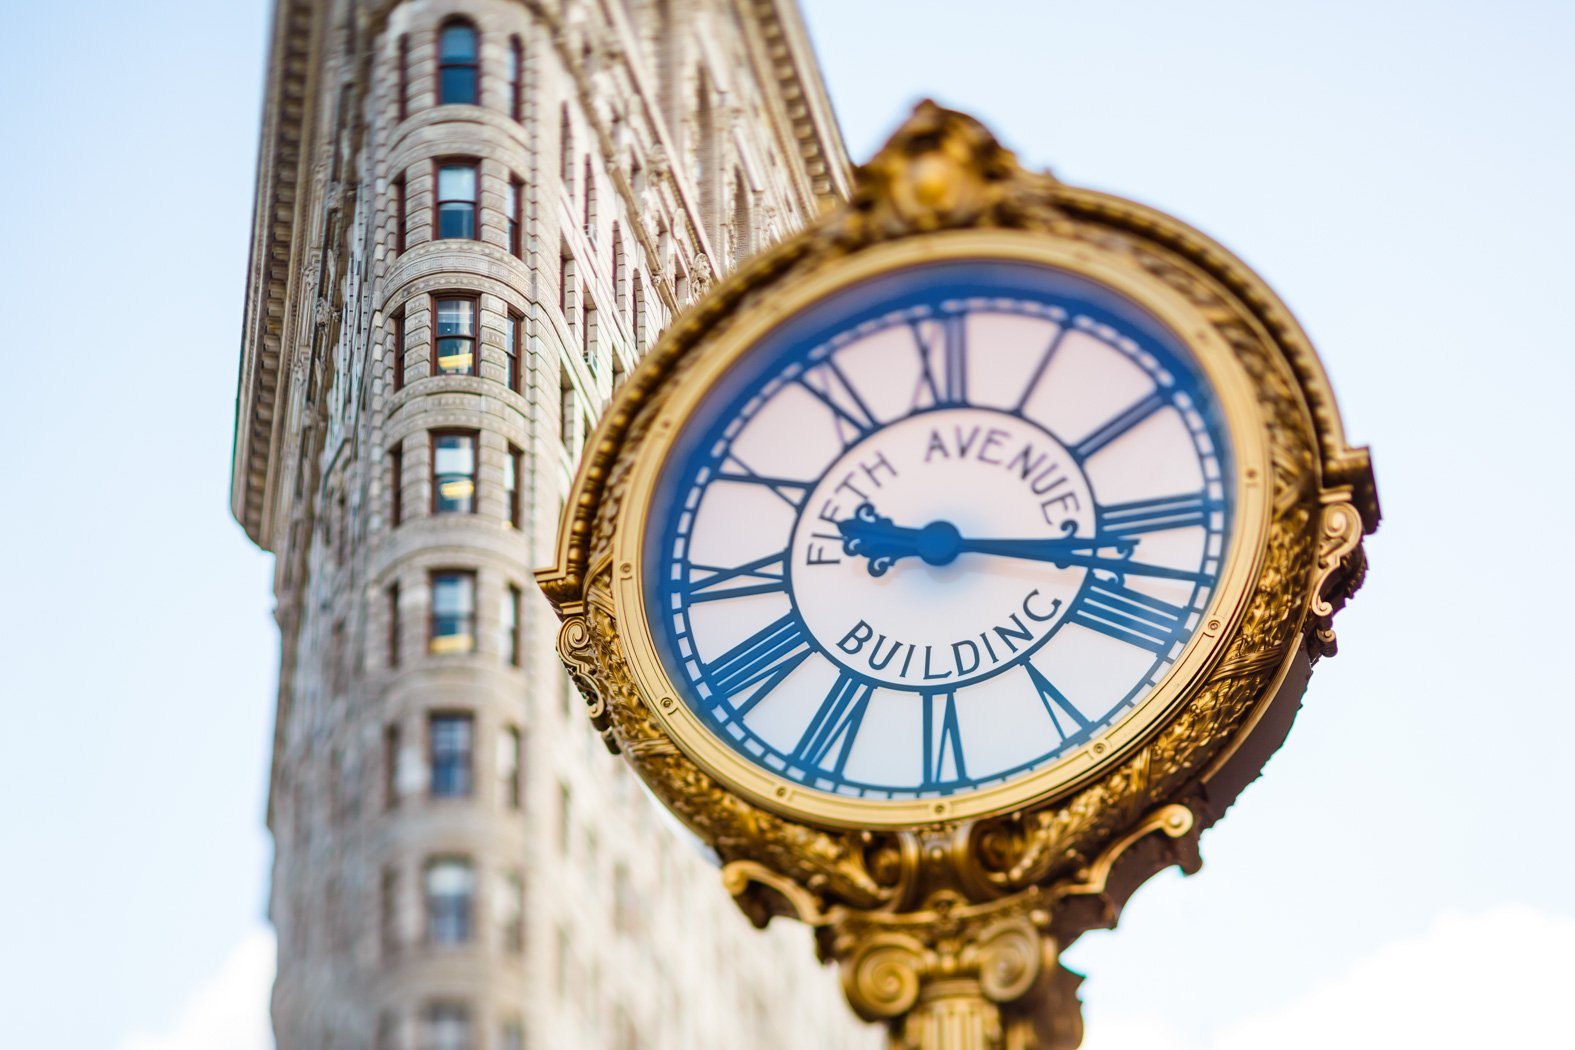 fifth avenue building clock with the flat iron building in the background